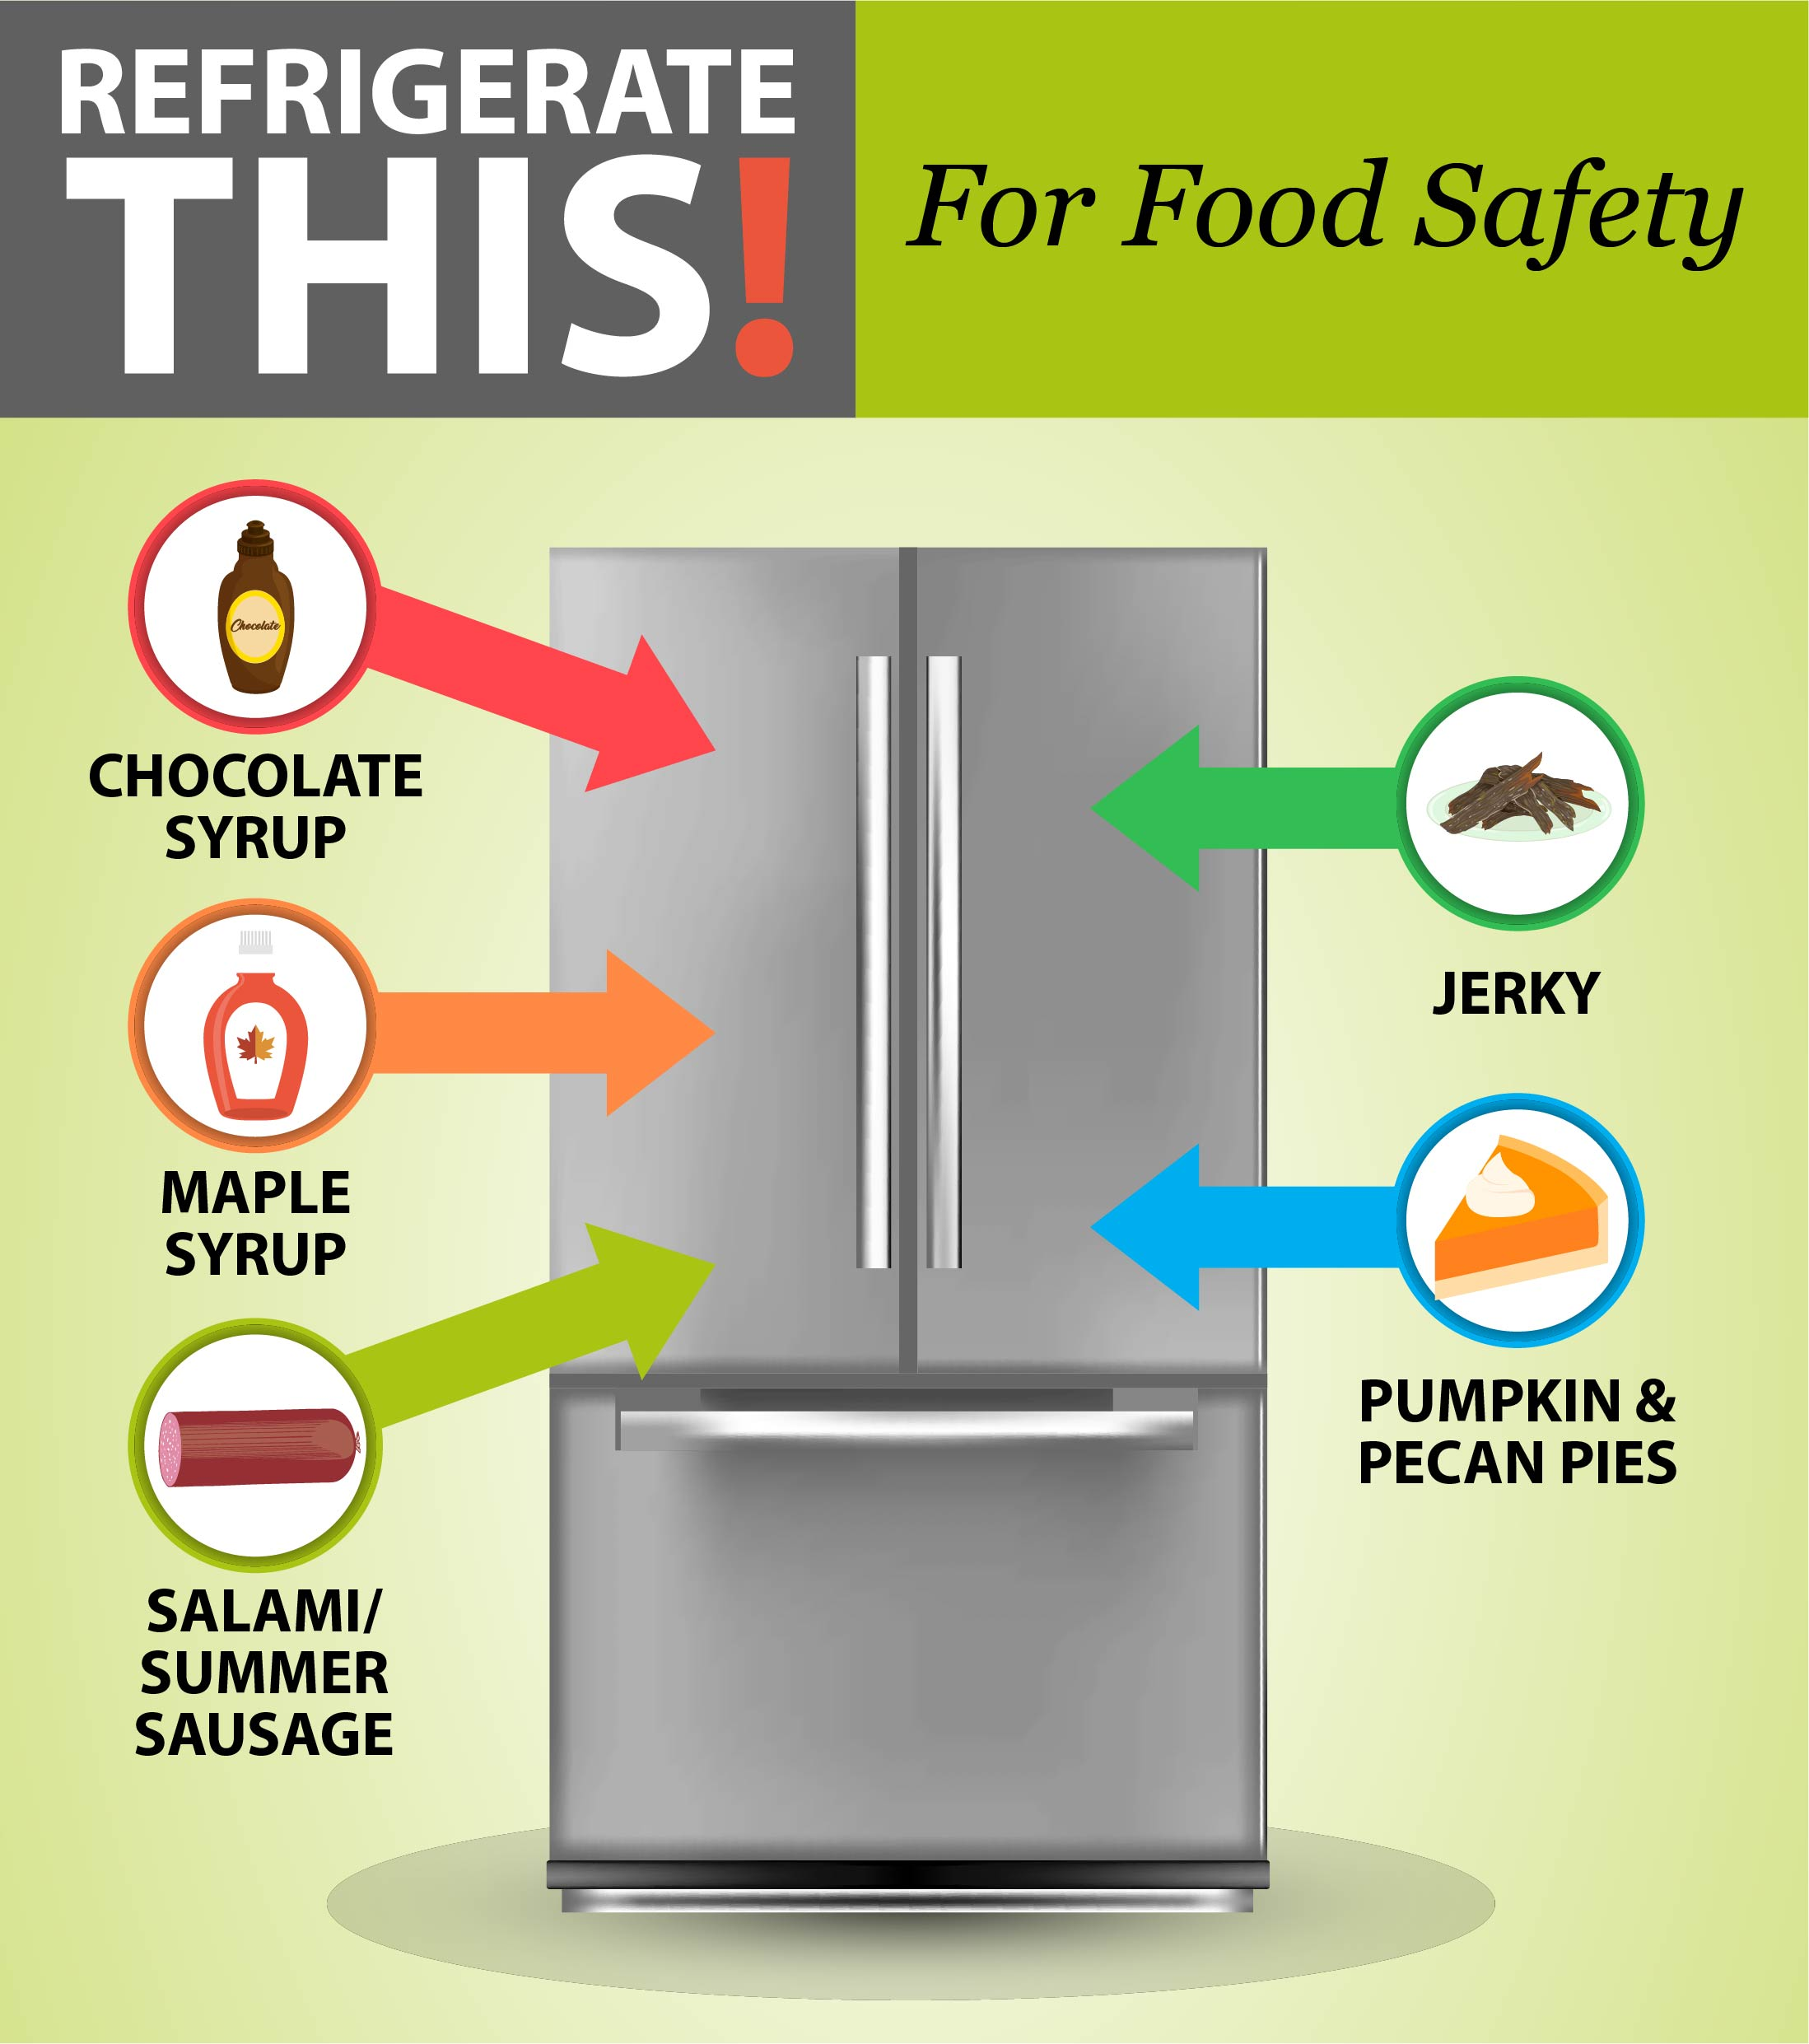 Refrigerate this! For food safety: maple syrup, chocolate syrup, salami, jerky, and pumpkin and pecan pies.